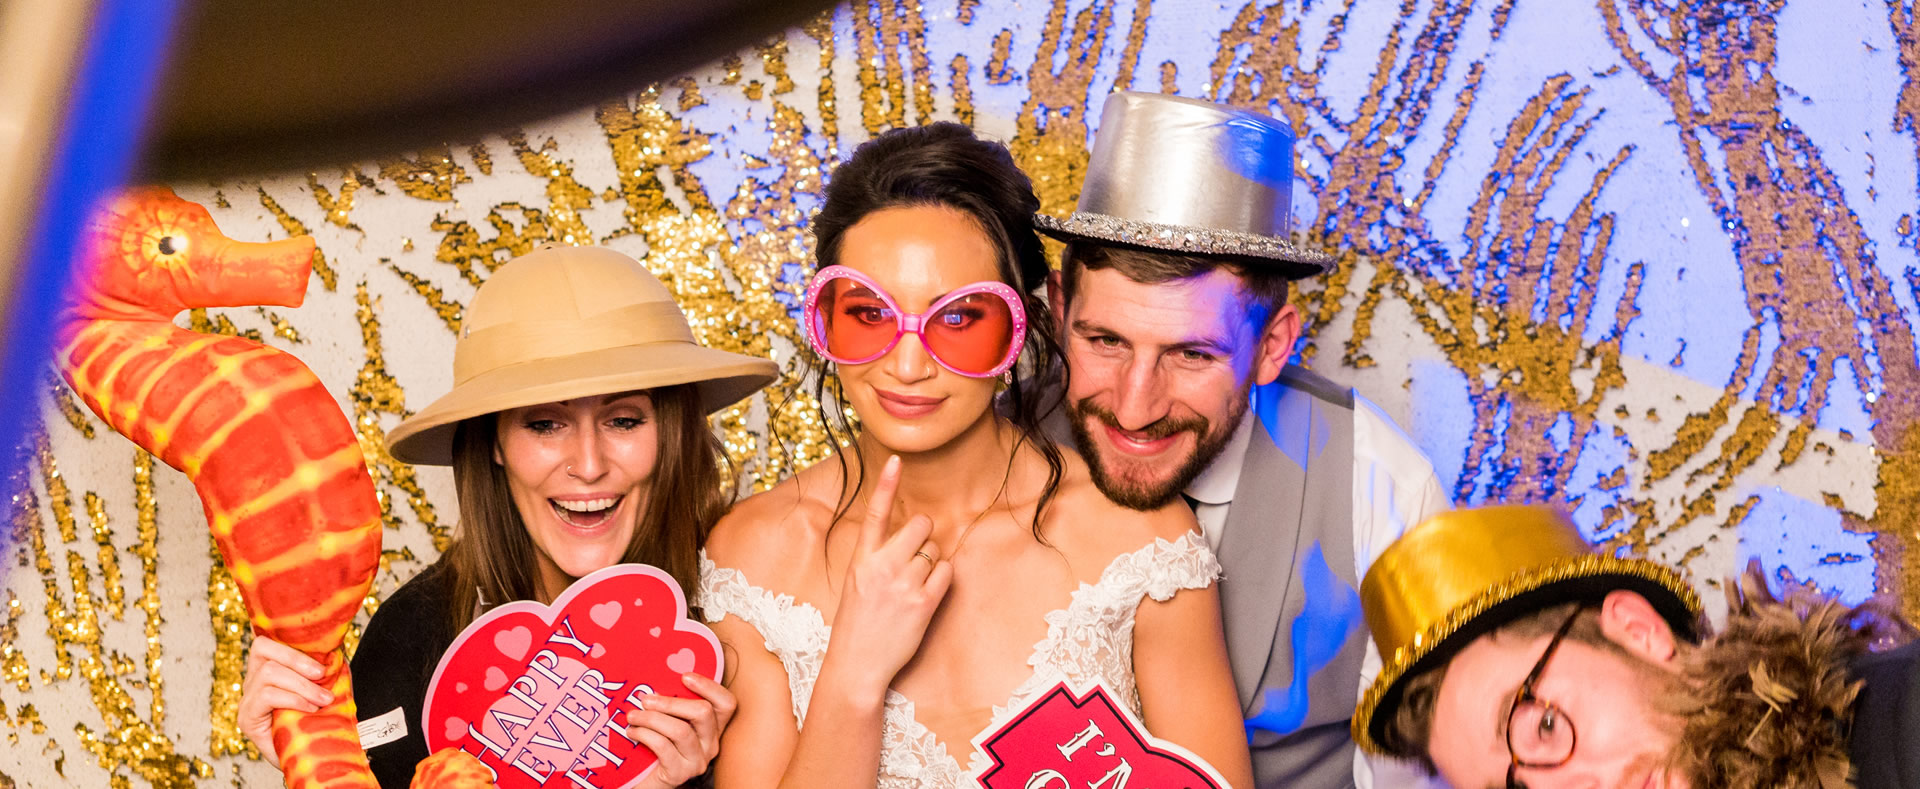 Photo Booth Hire Sussex - Retro & Modern Photo Booth Rental